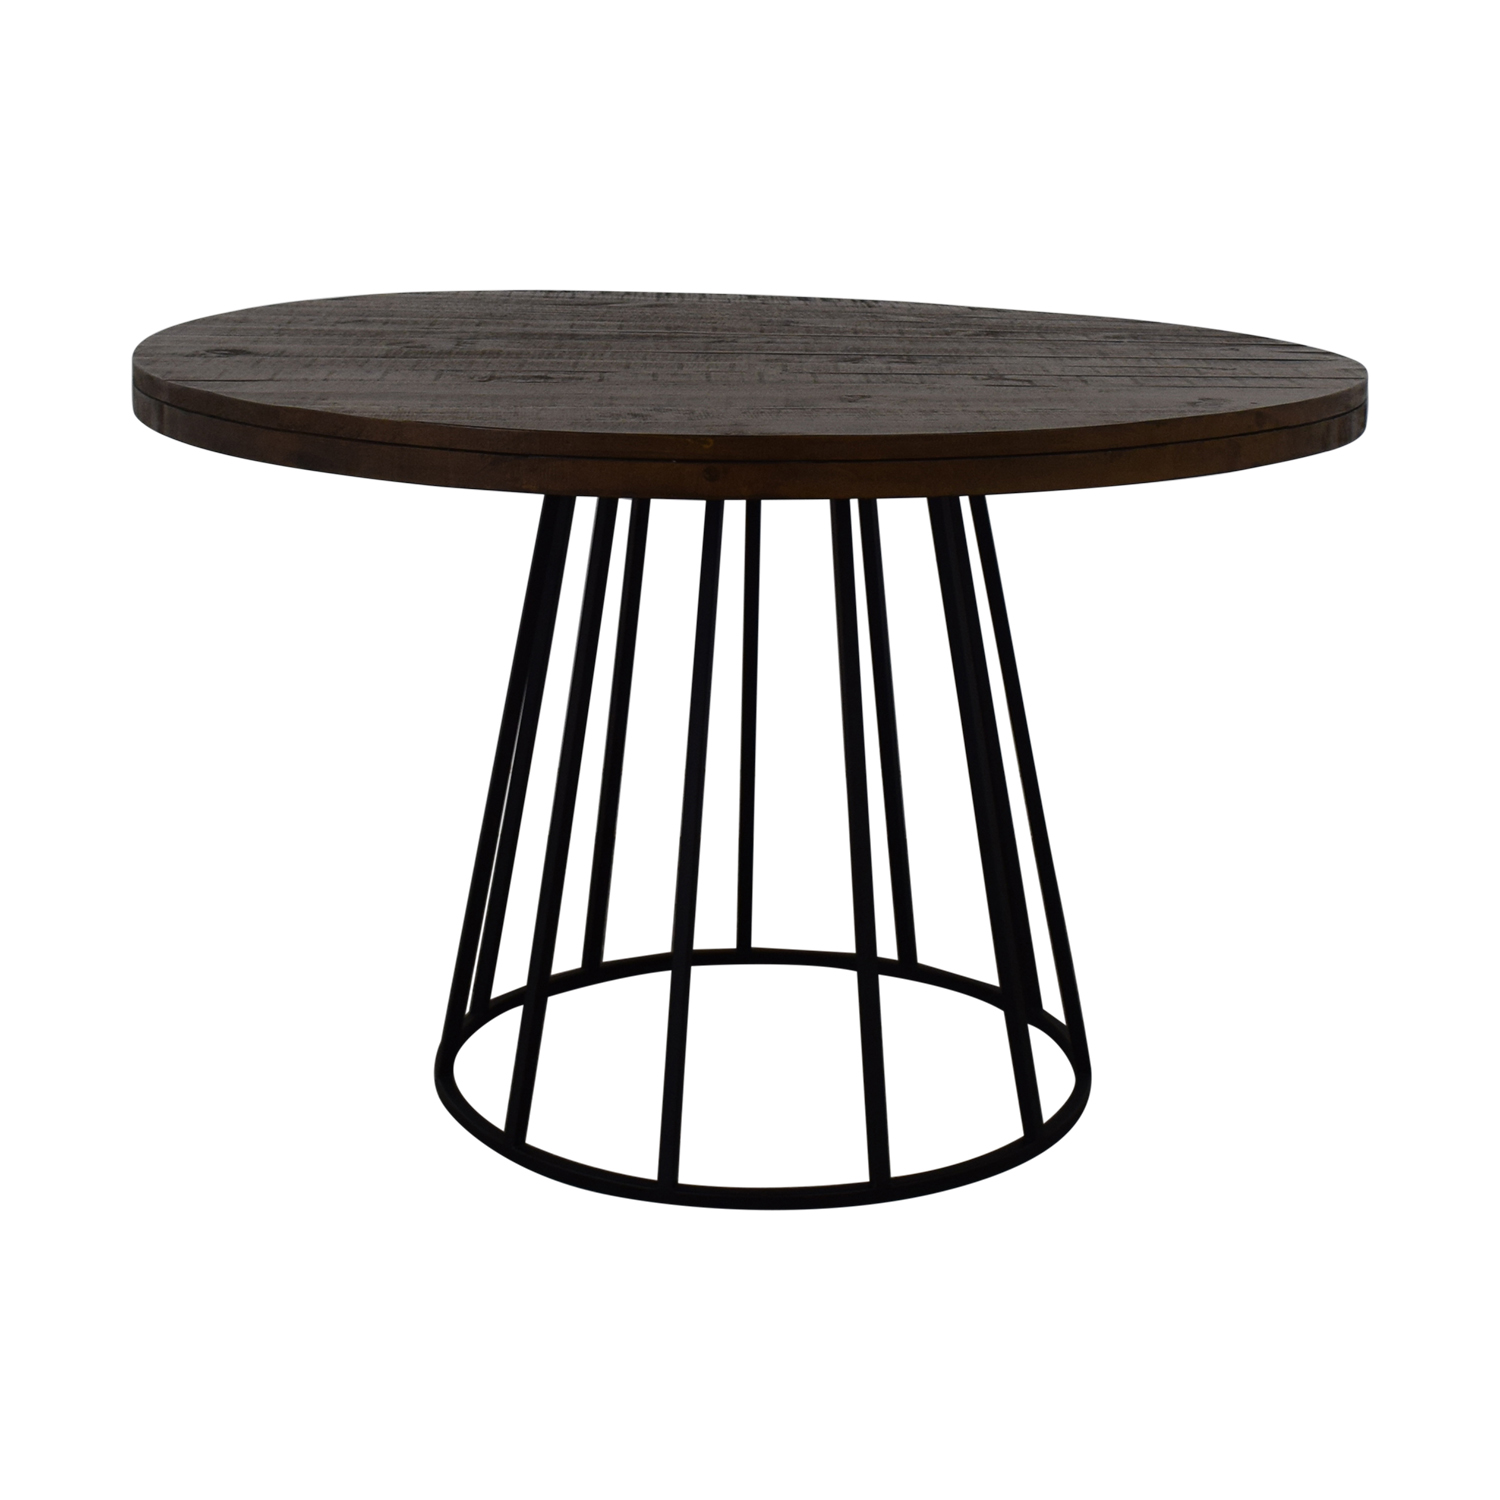 Mercury Row Mercury Row Morena Dining Table discount